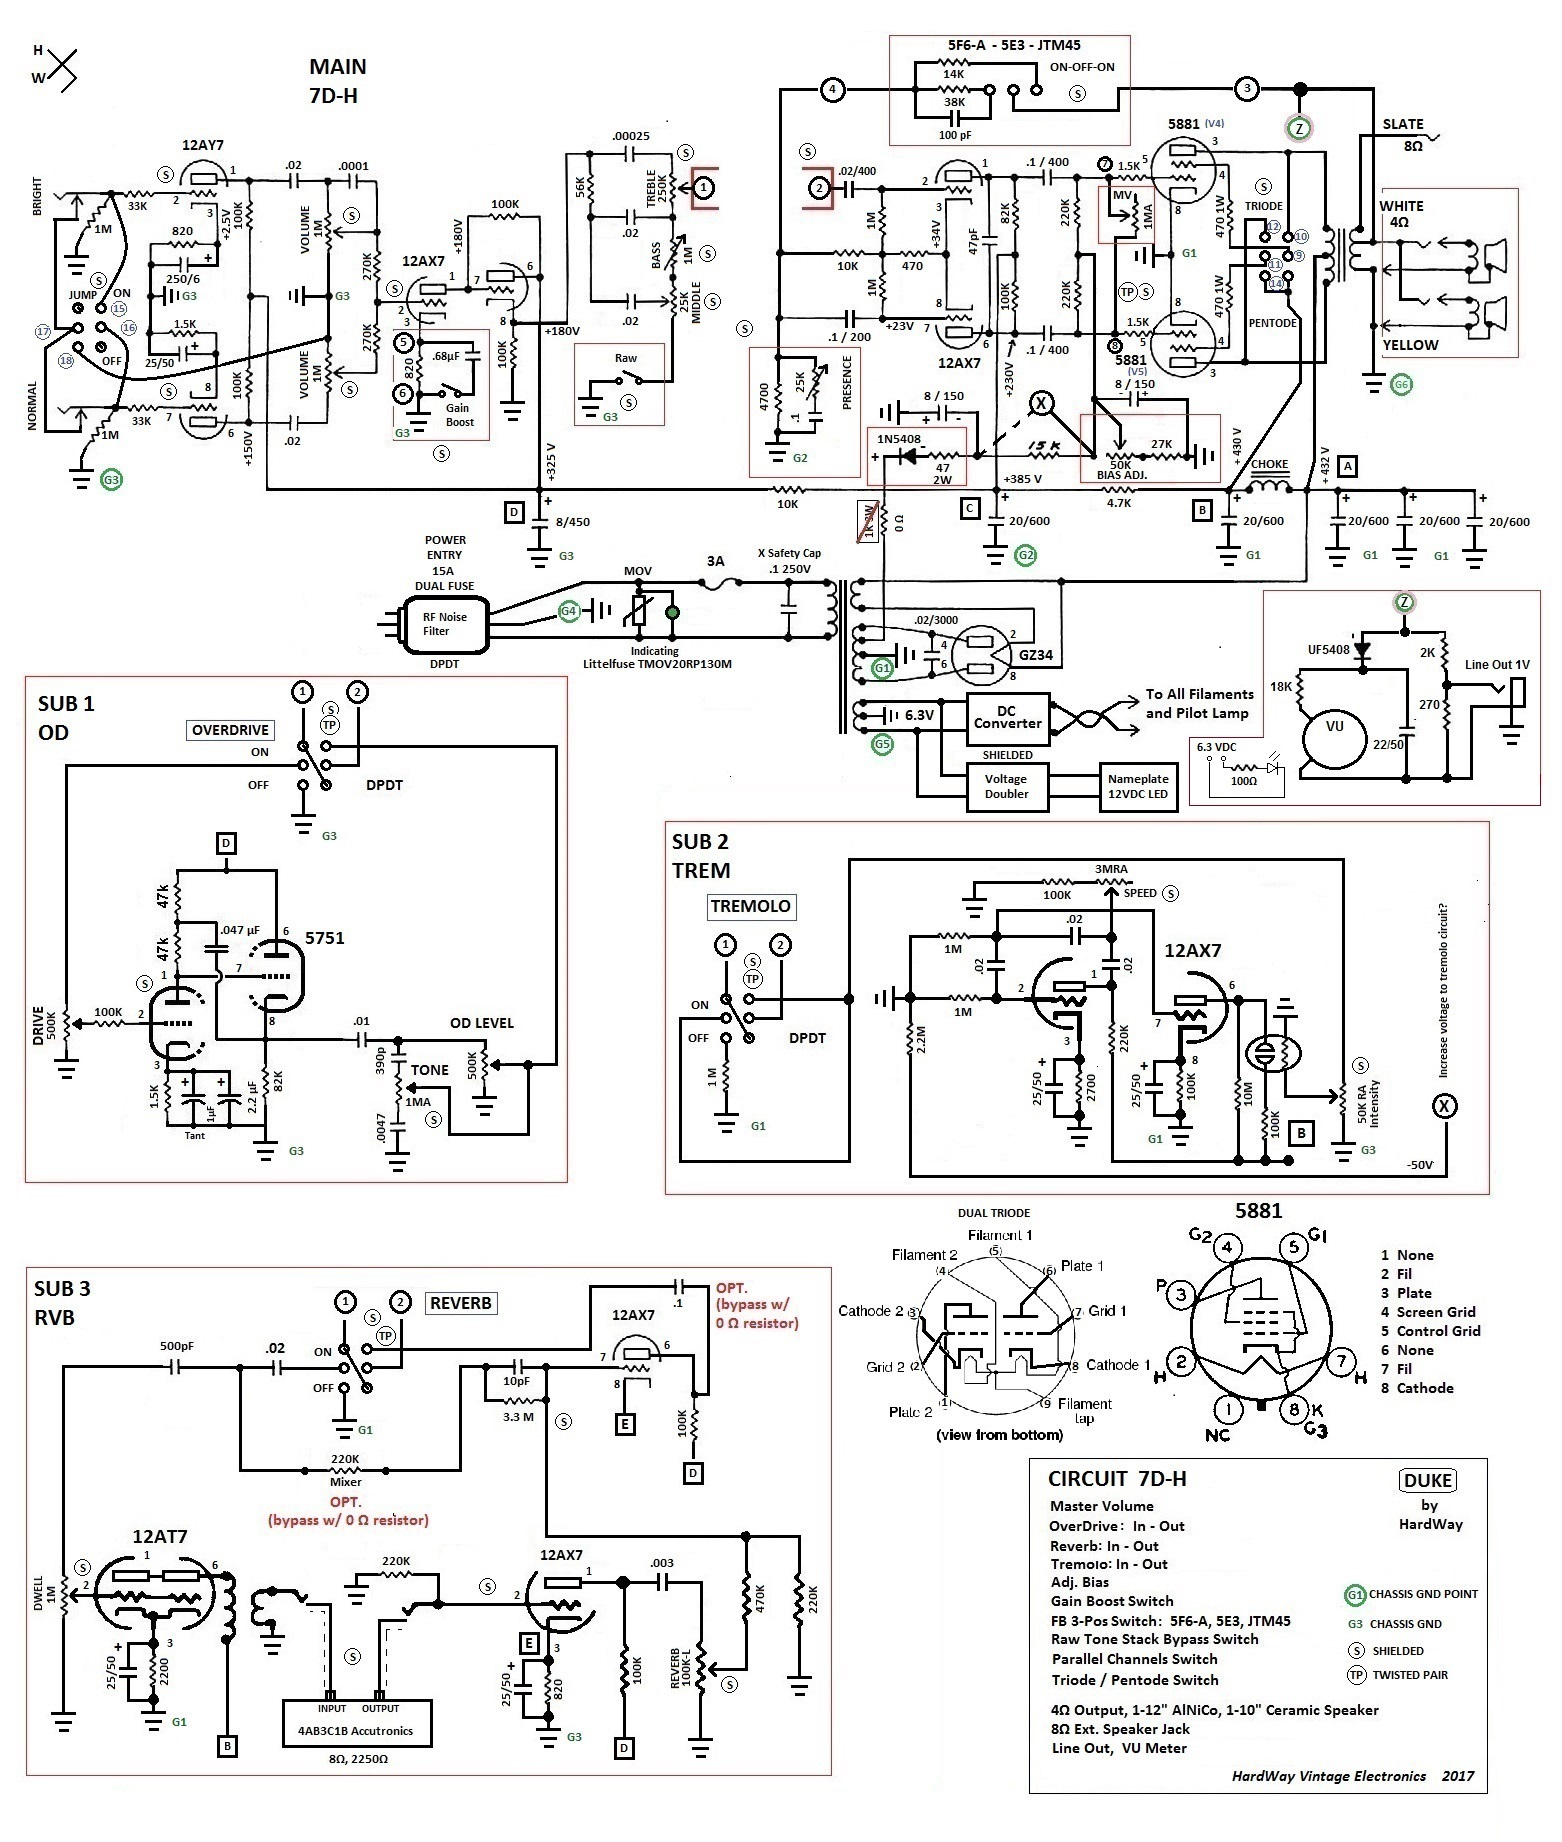 7d H Duke Schematic With Sub Circuits Donald W Hayward